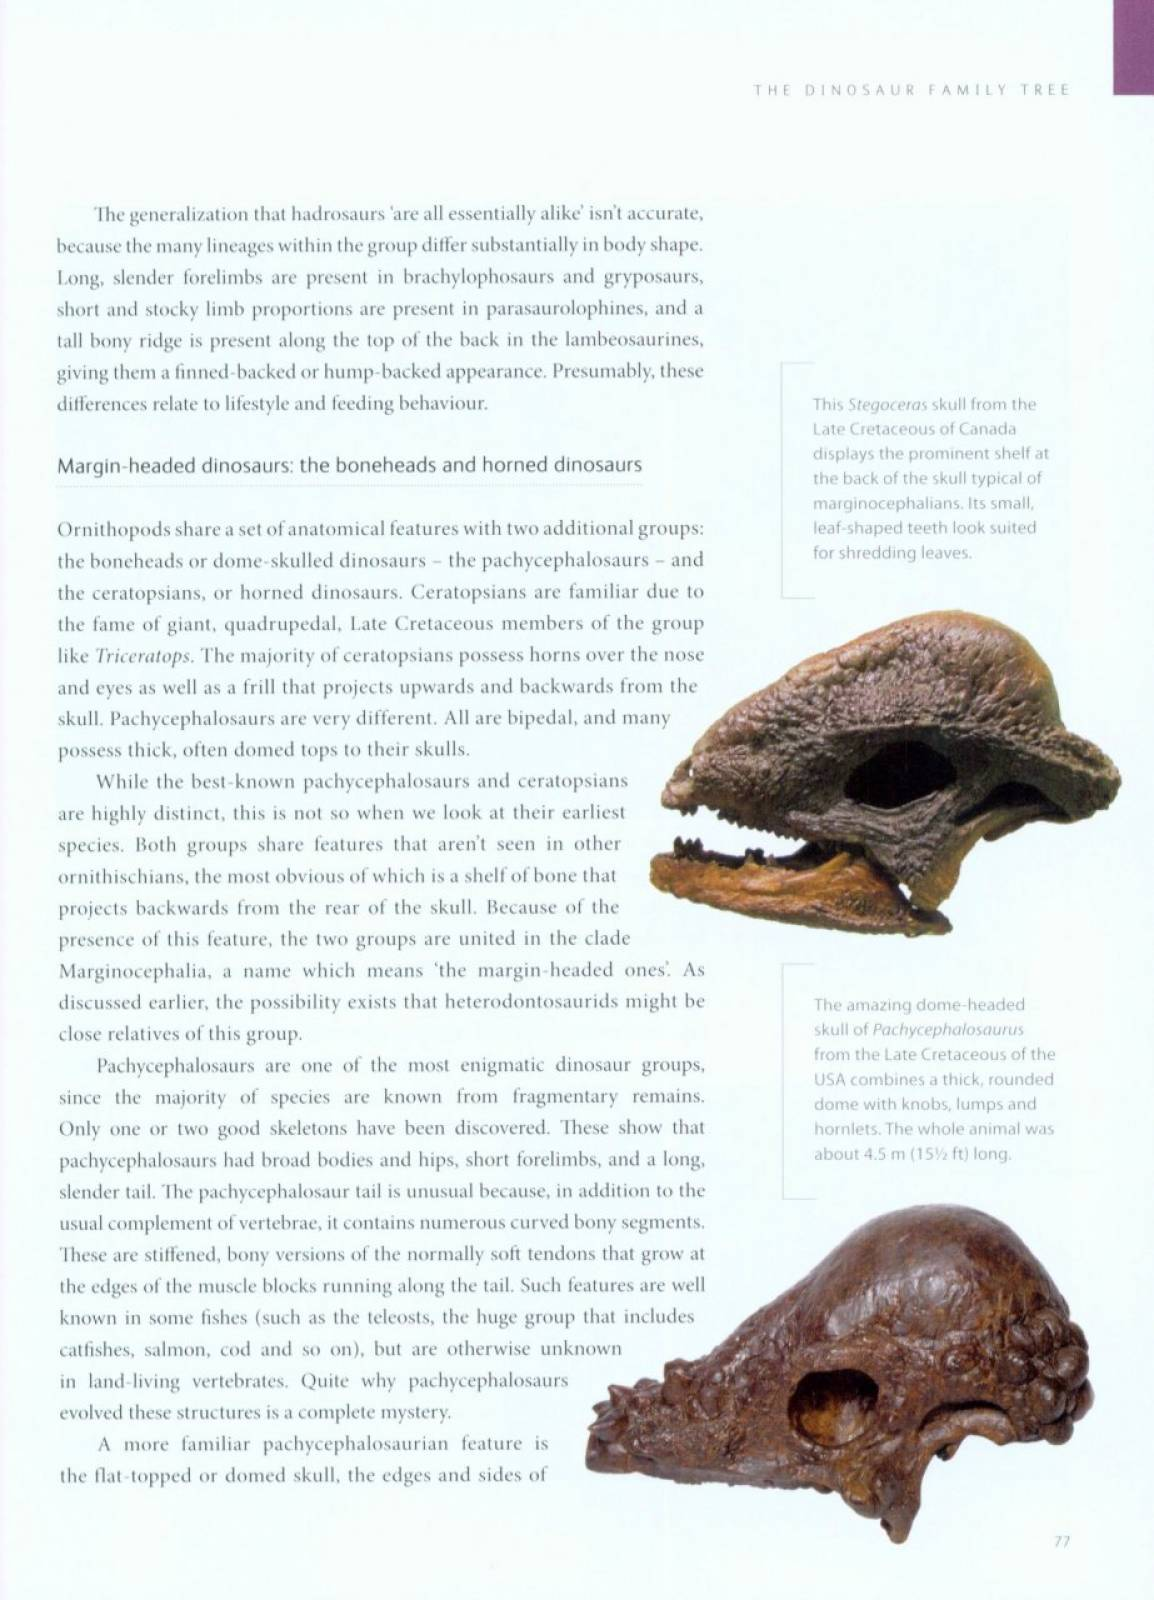 Dinosaurs How They Lived and Evolved (Natural History Museum) thumbnails